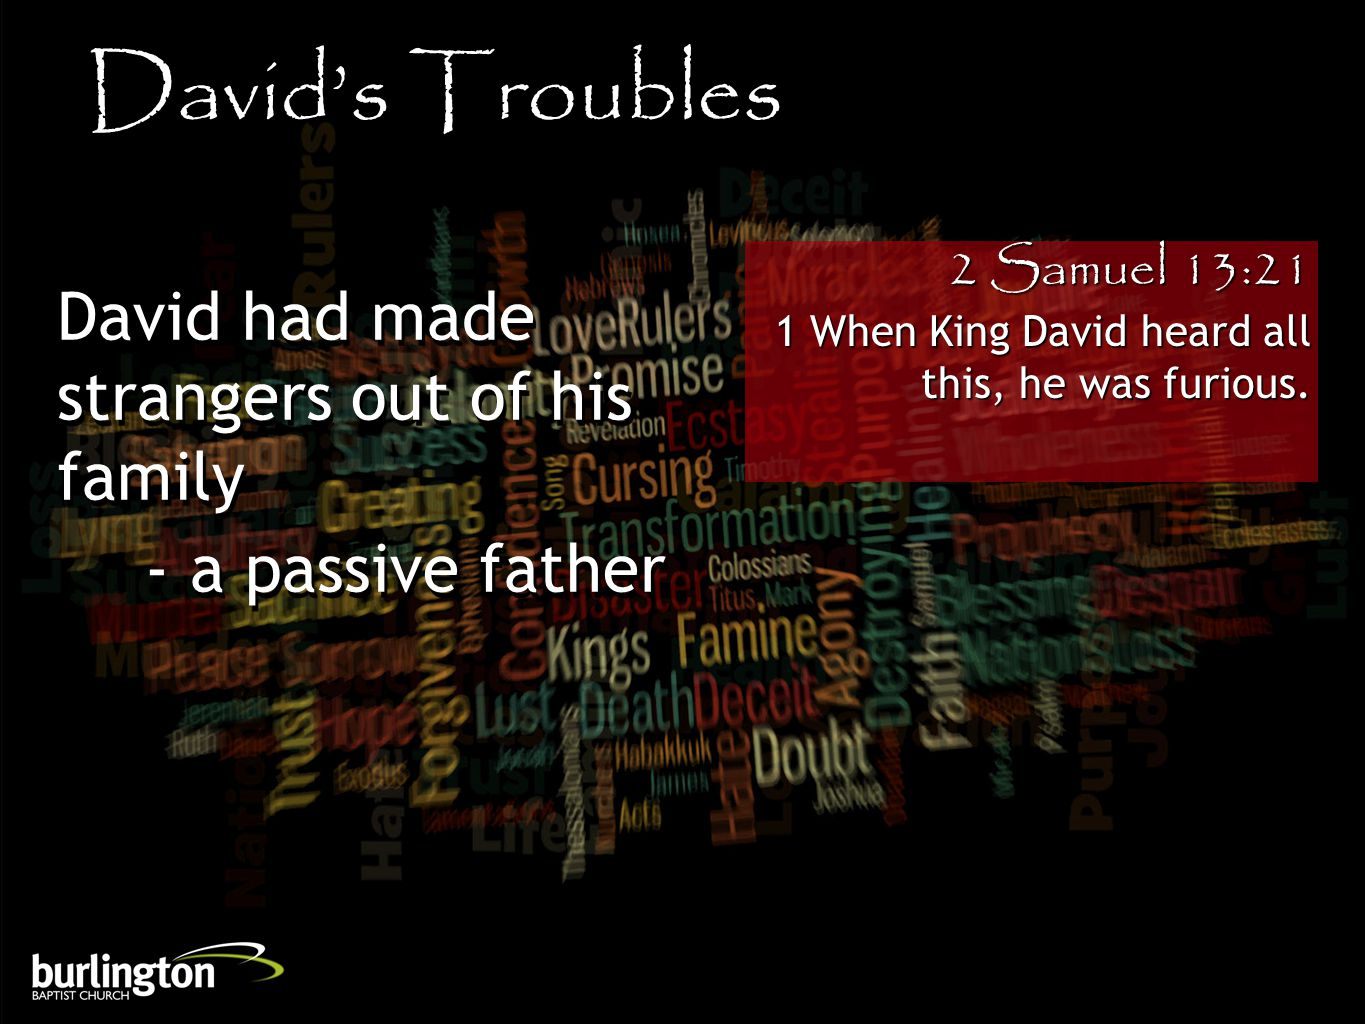 2 Samuel 13:21 1 When King David heard all this, he was furious. David's Troubles David had made strangers out of his family - a passive father